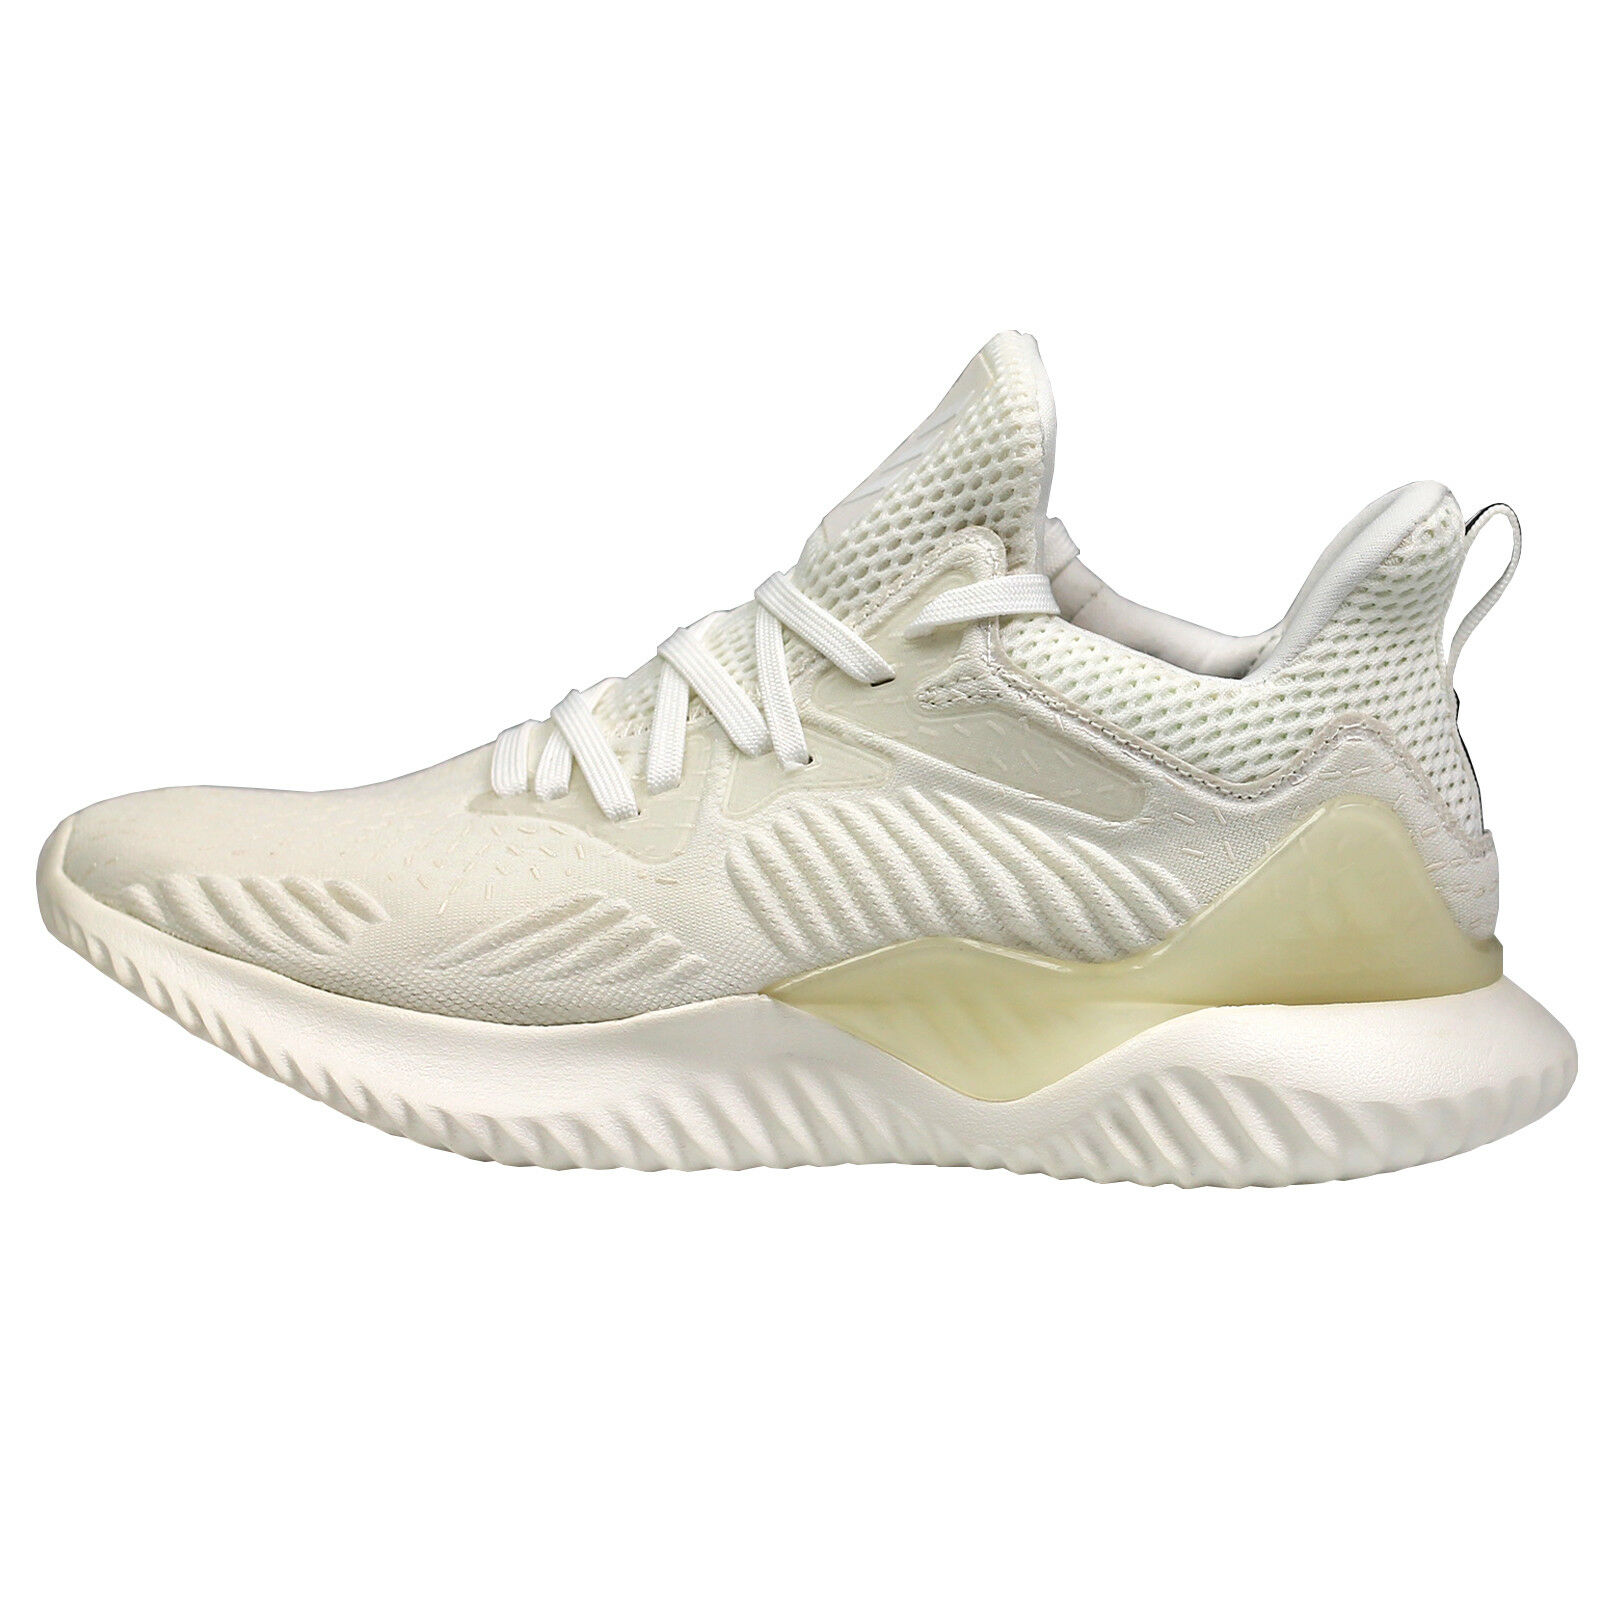 Adidas Alphabounce Beyond Women's Sneakers DB1119 (NEW) Lists @  100